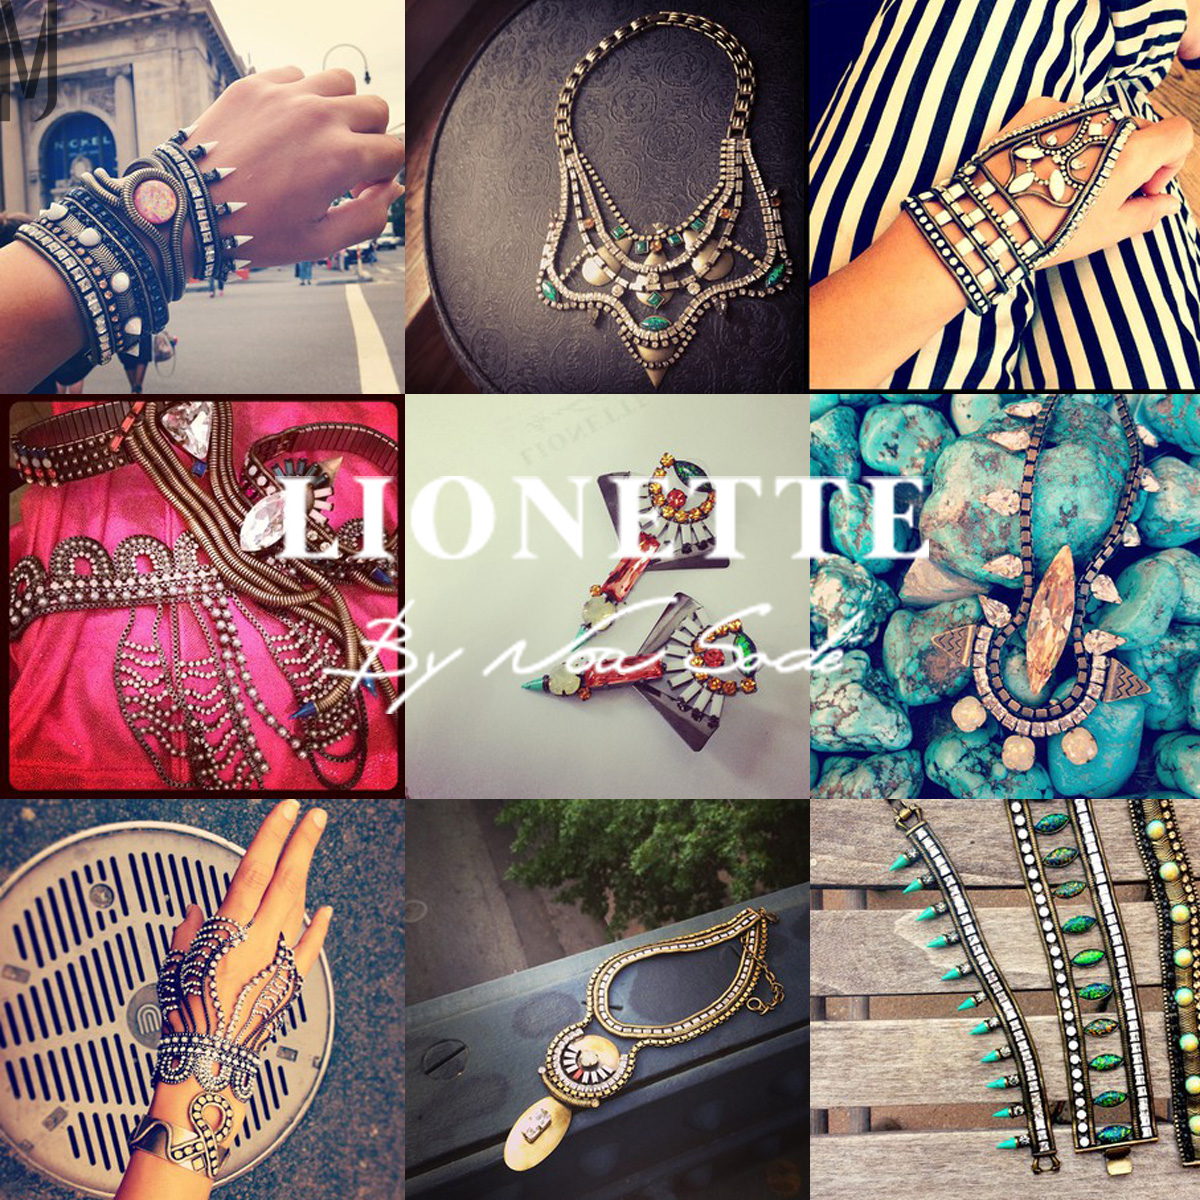 lionette - madeofjewelry